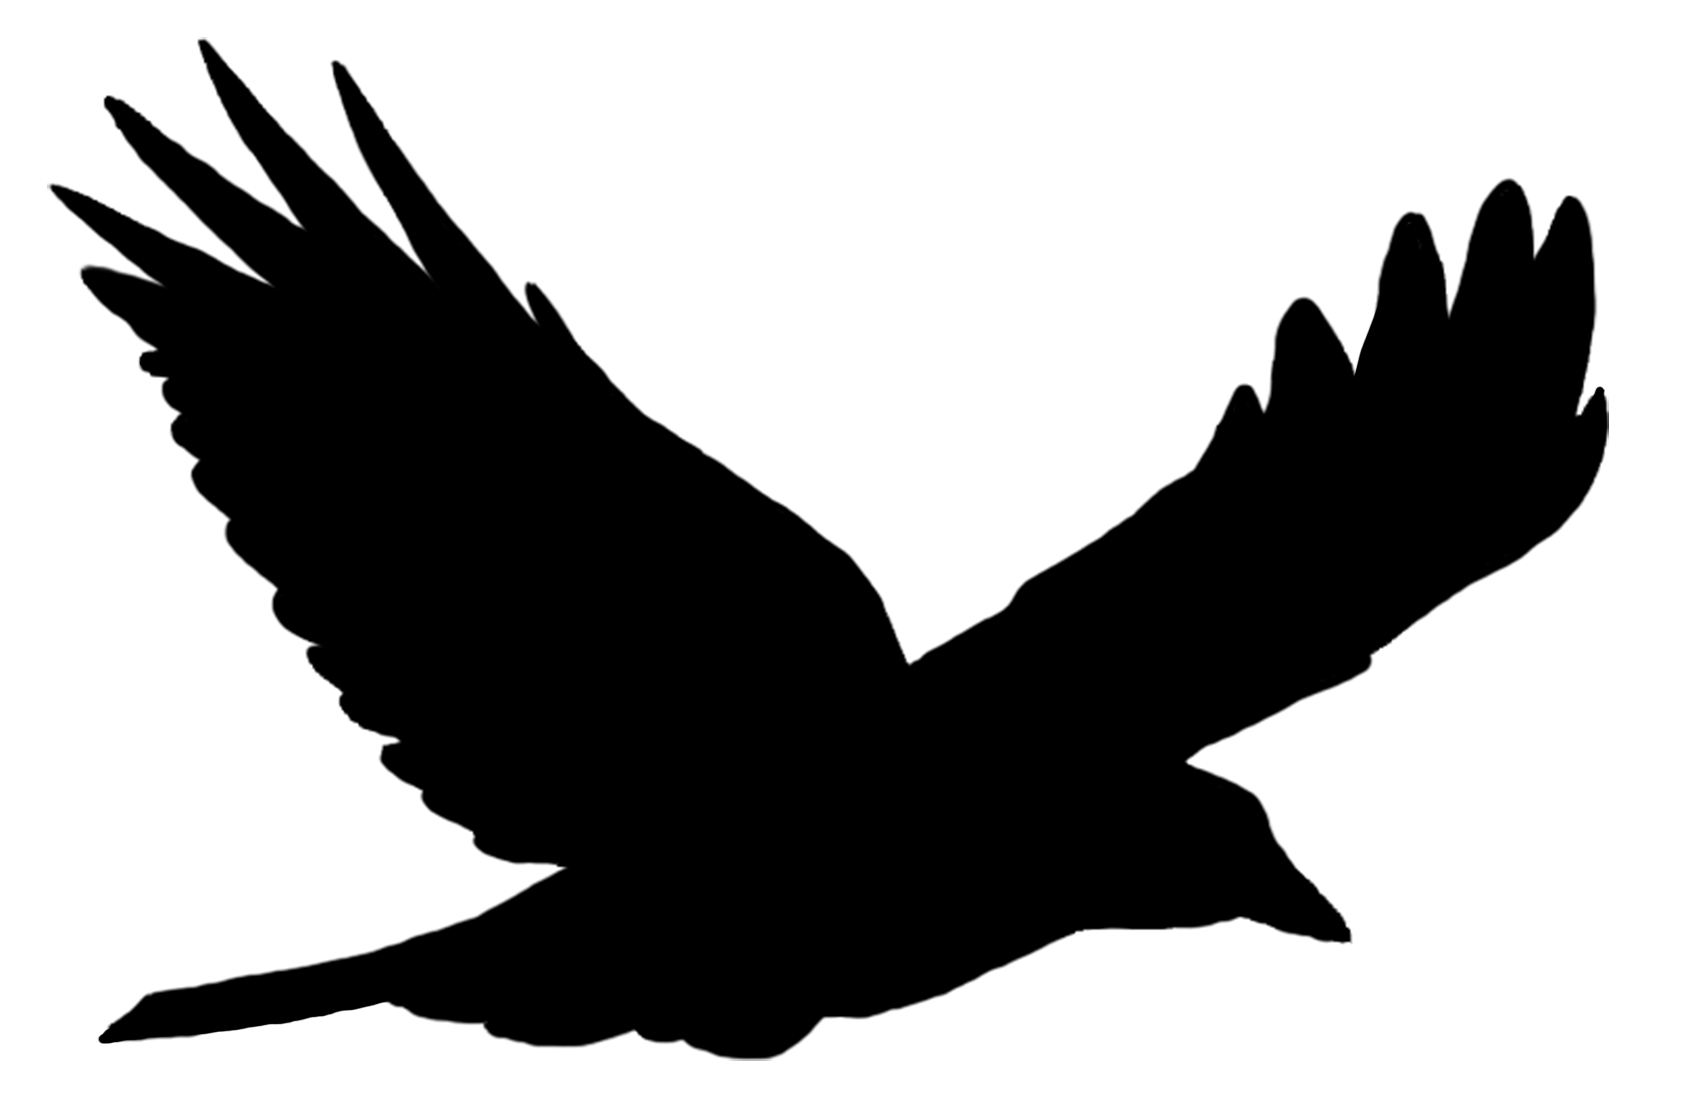 svg library library Turkey silhouette at getdrawings. Vulture clipart wing